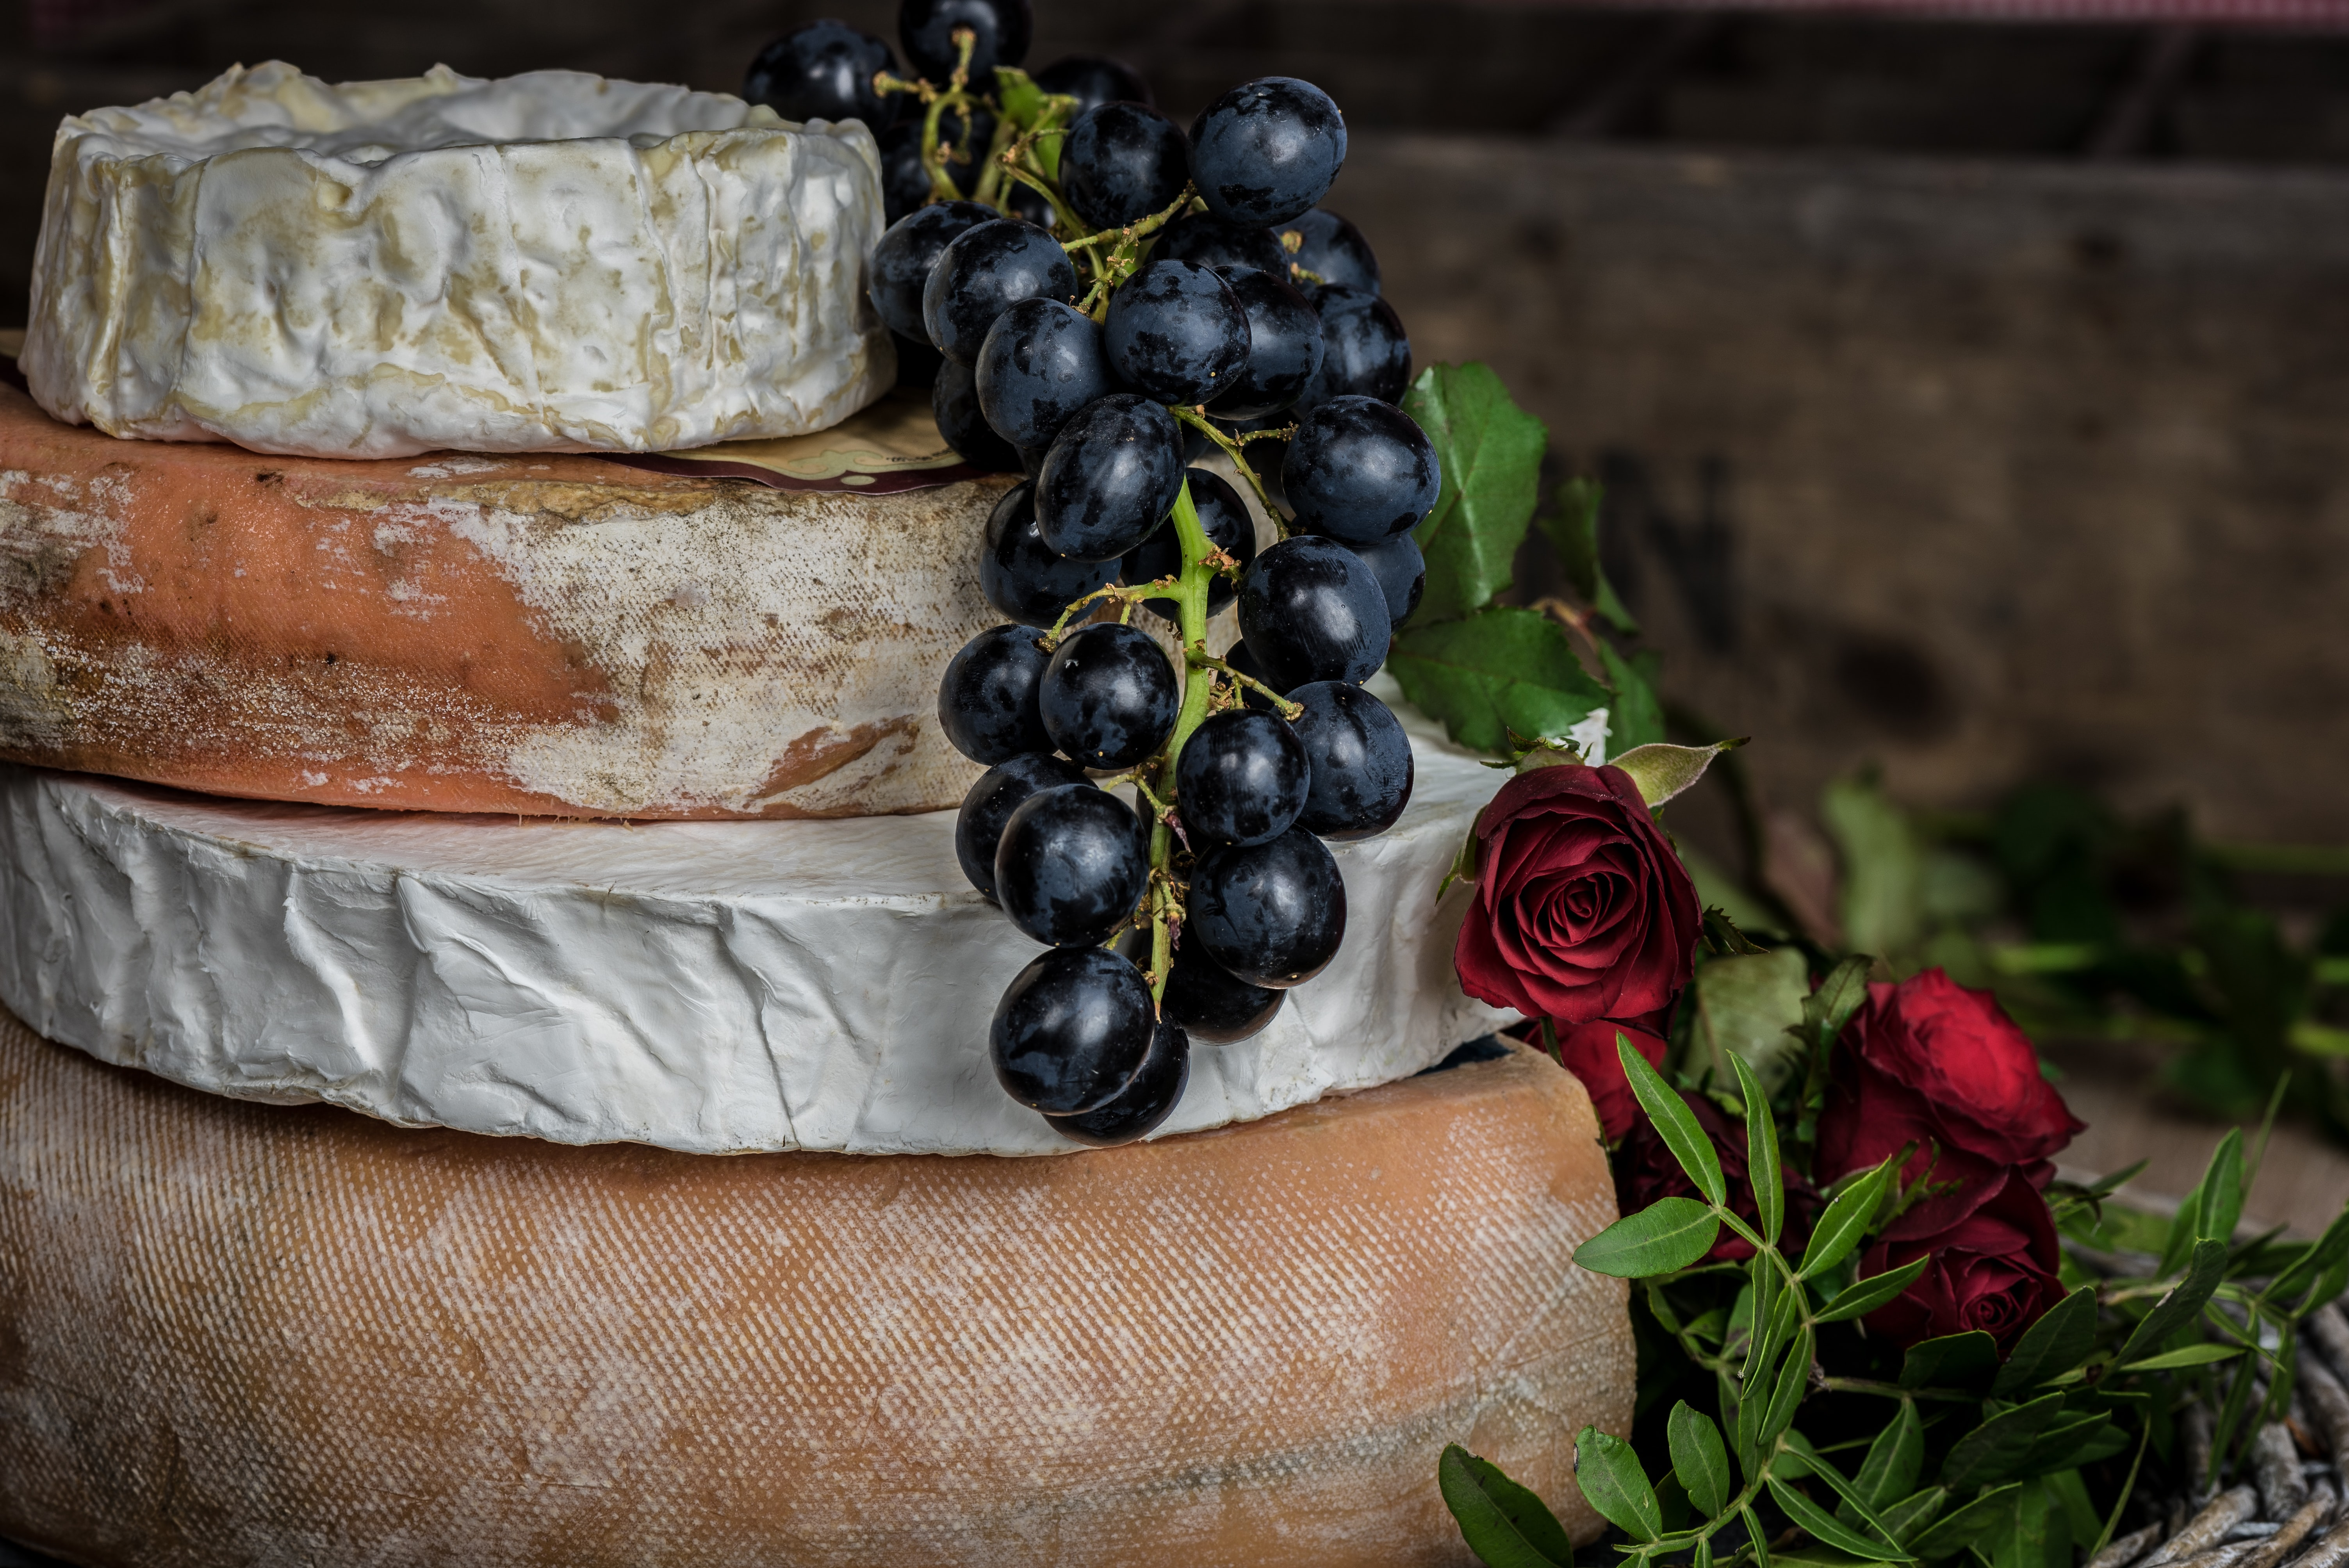 Stack of camembert, brie, and assorted gourmet cheeses with grapes and roses